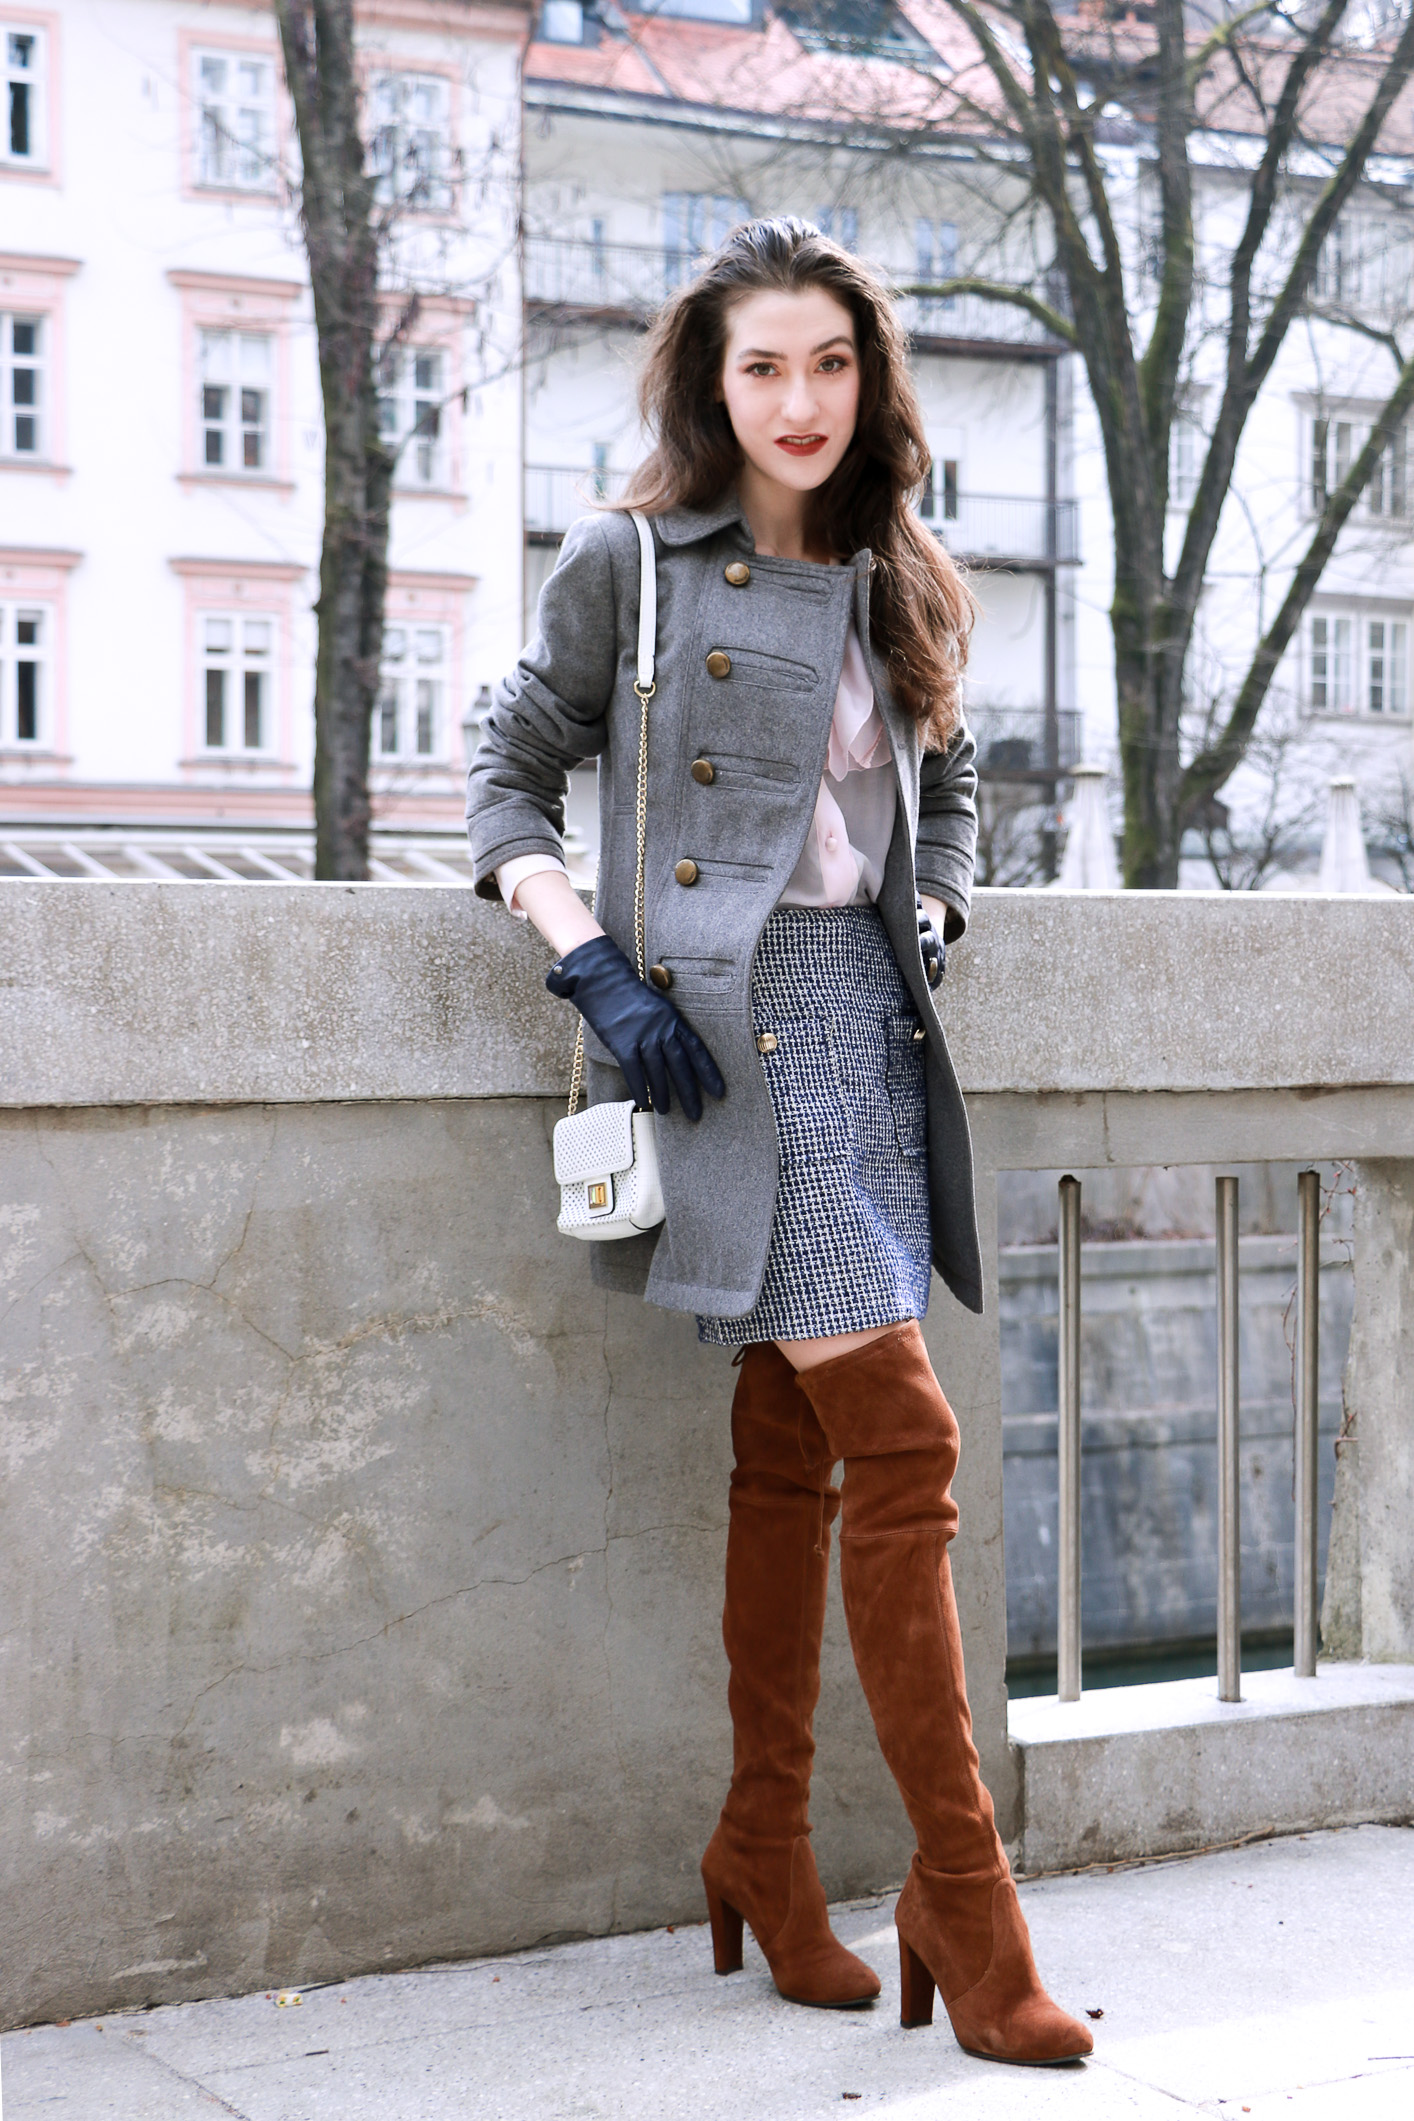 Fashion blogger Veronika Lipar of Brunette From Wall Street sharing how to style white mini bag, brown otk boots, mini blue tweed skirt, pink top and grey coat for a casual day out and about in the city